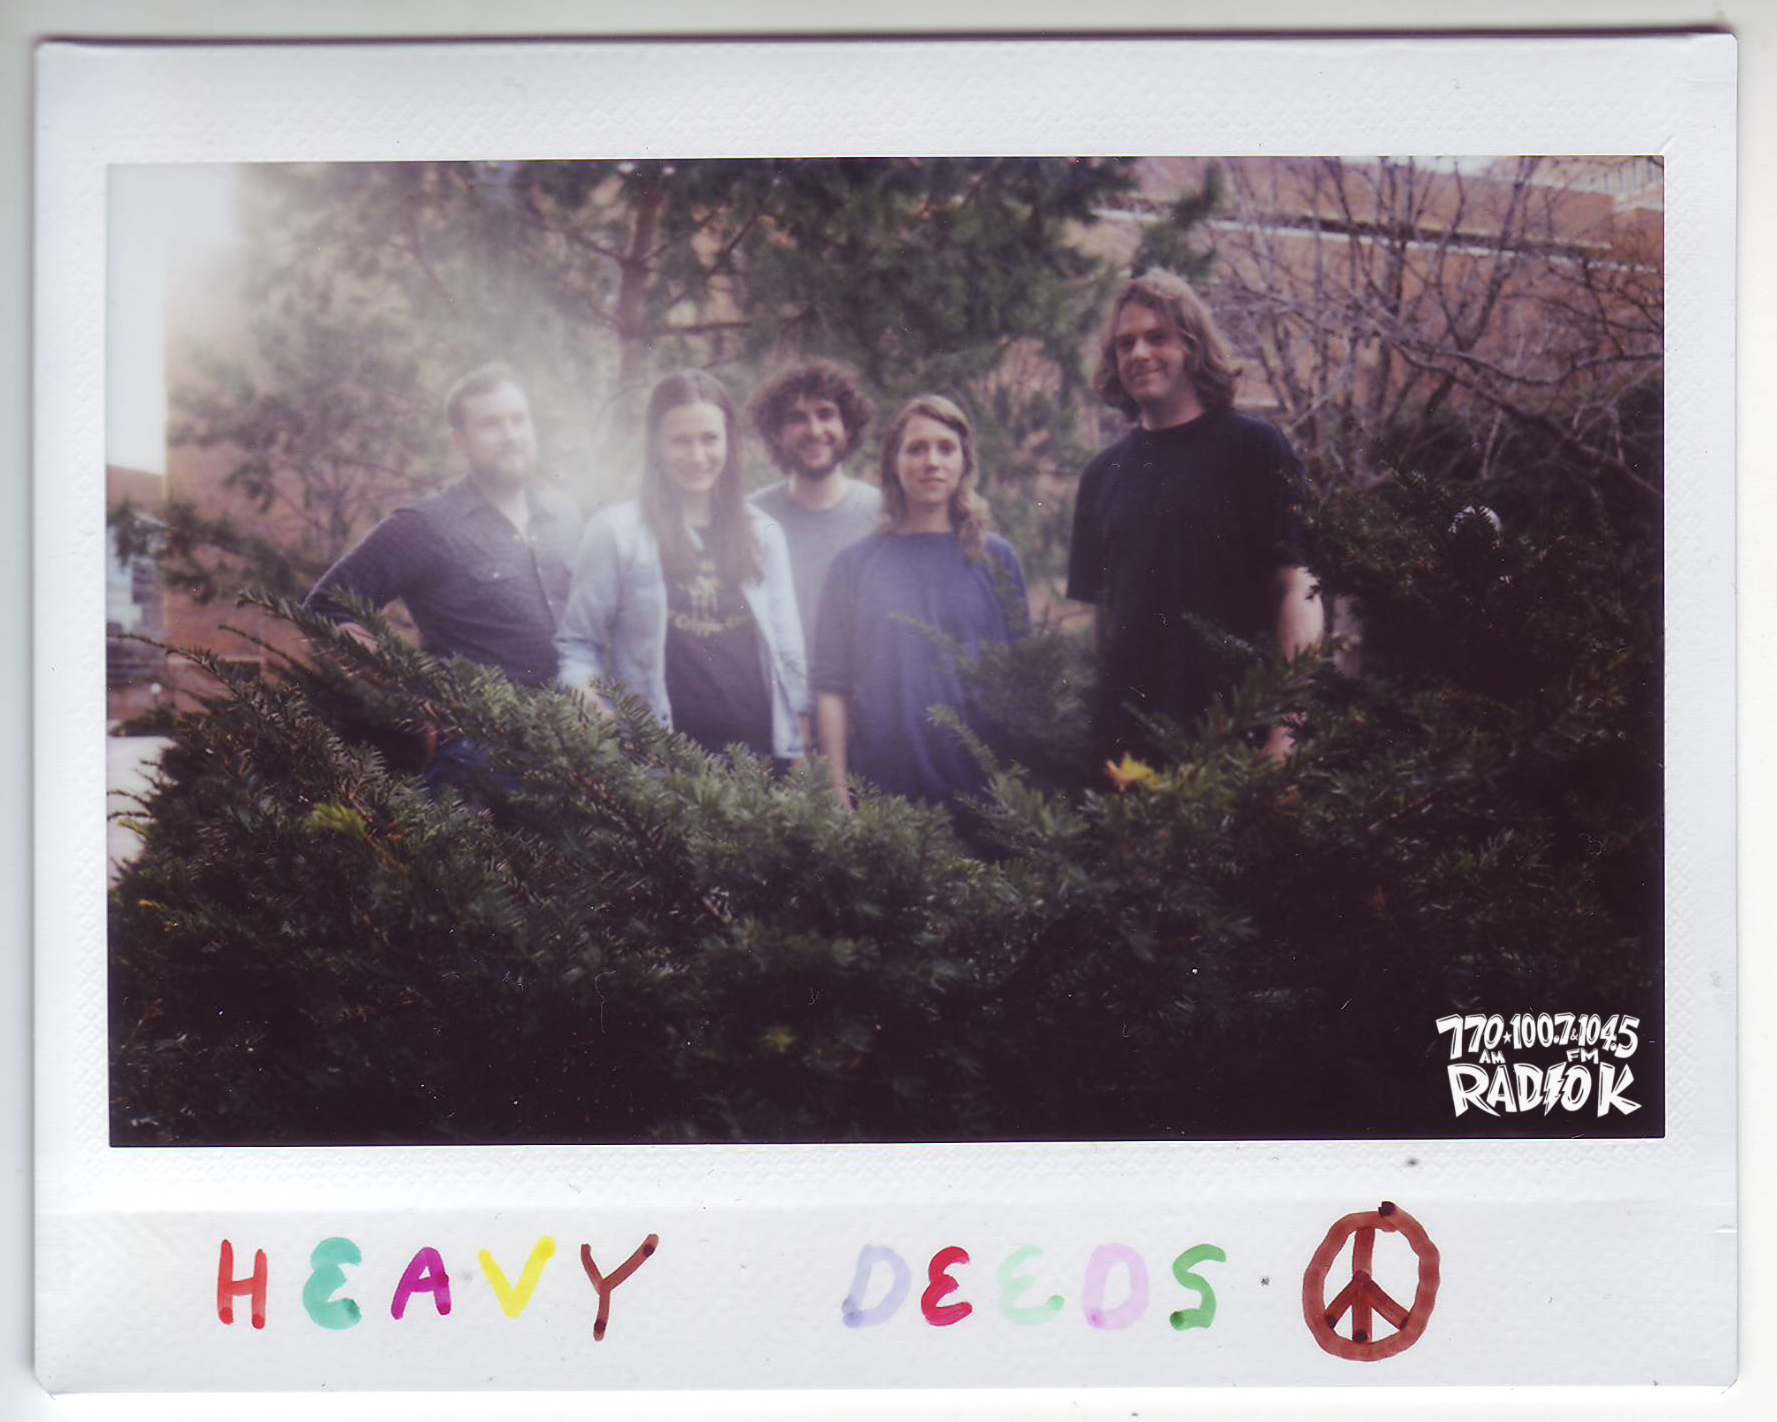 Heavy Deeds Radio K In-Studio Polaroid